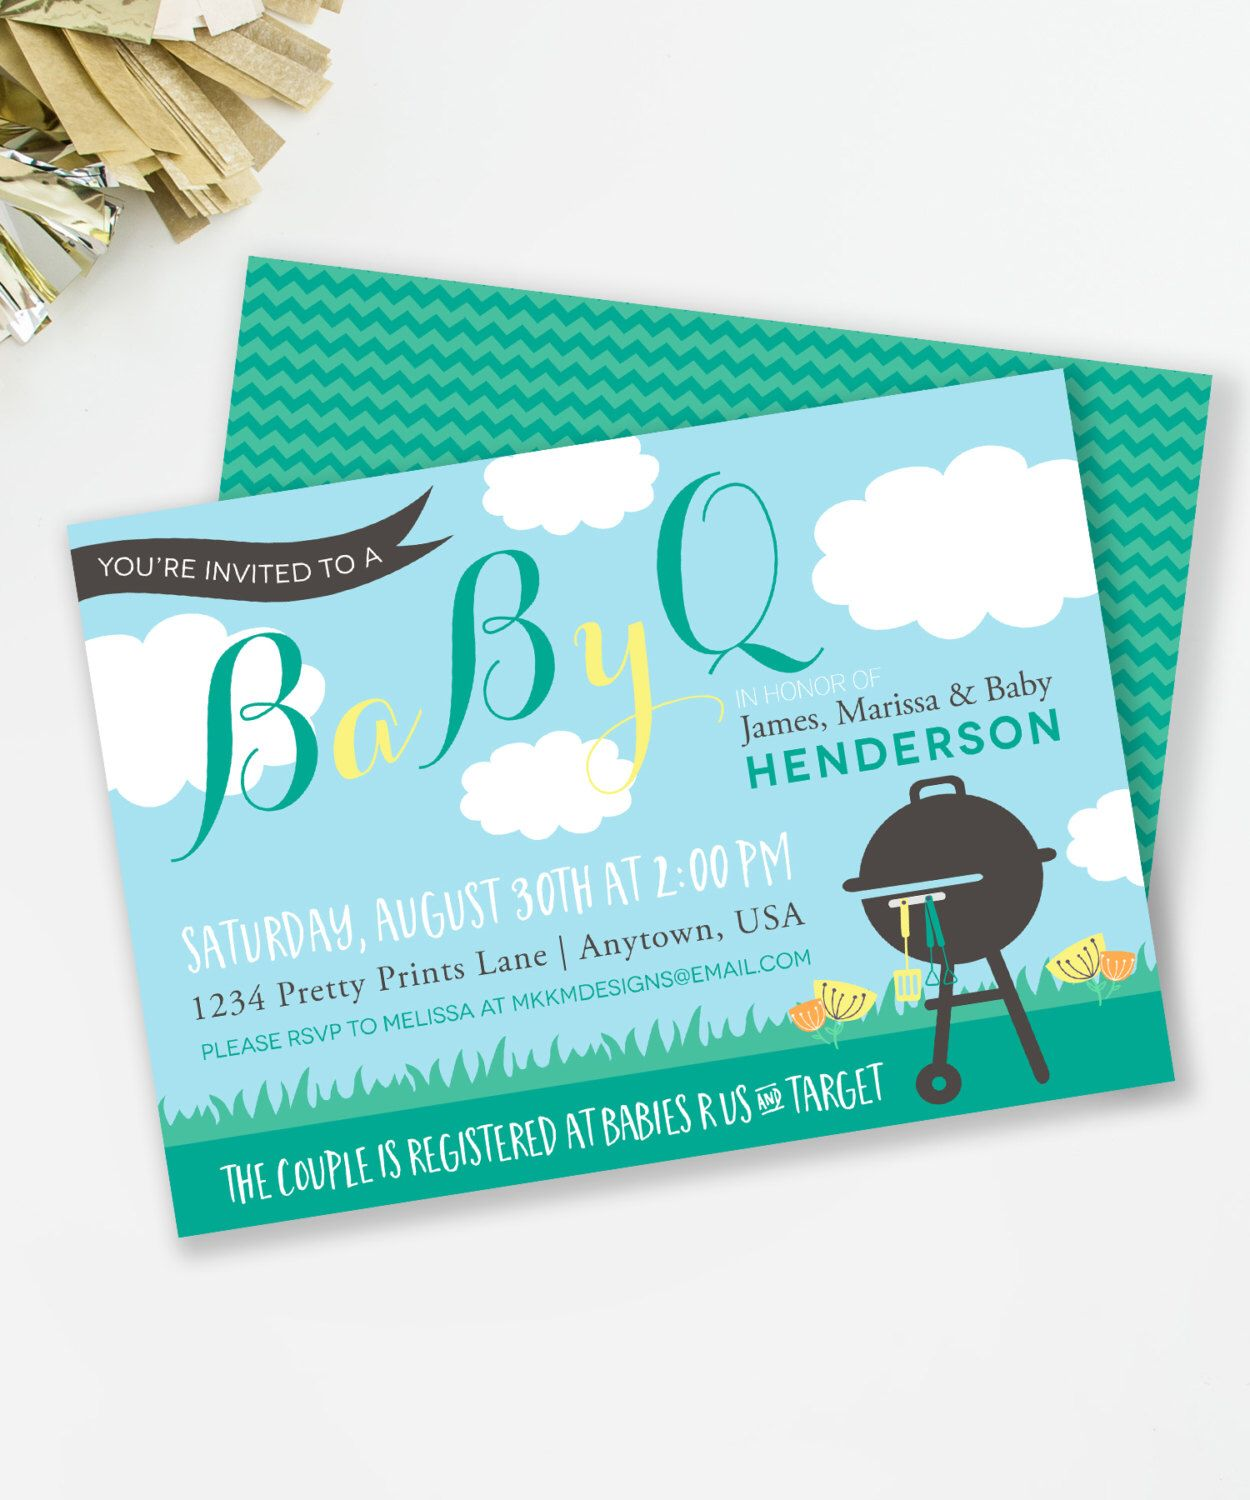 BabyQ Shower Invitation, Barbeque Baby Shower, Couples Shower ...